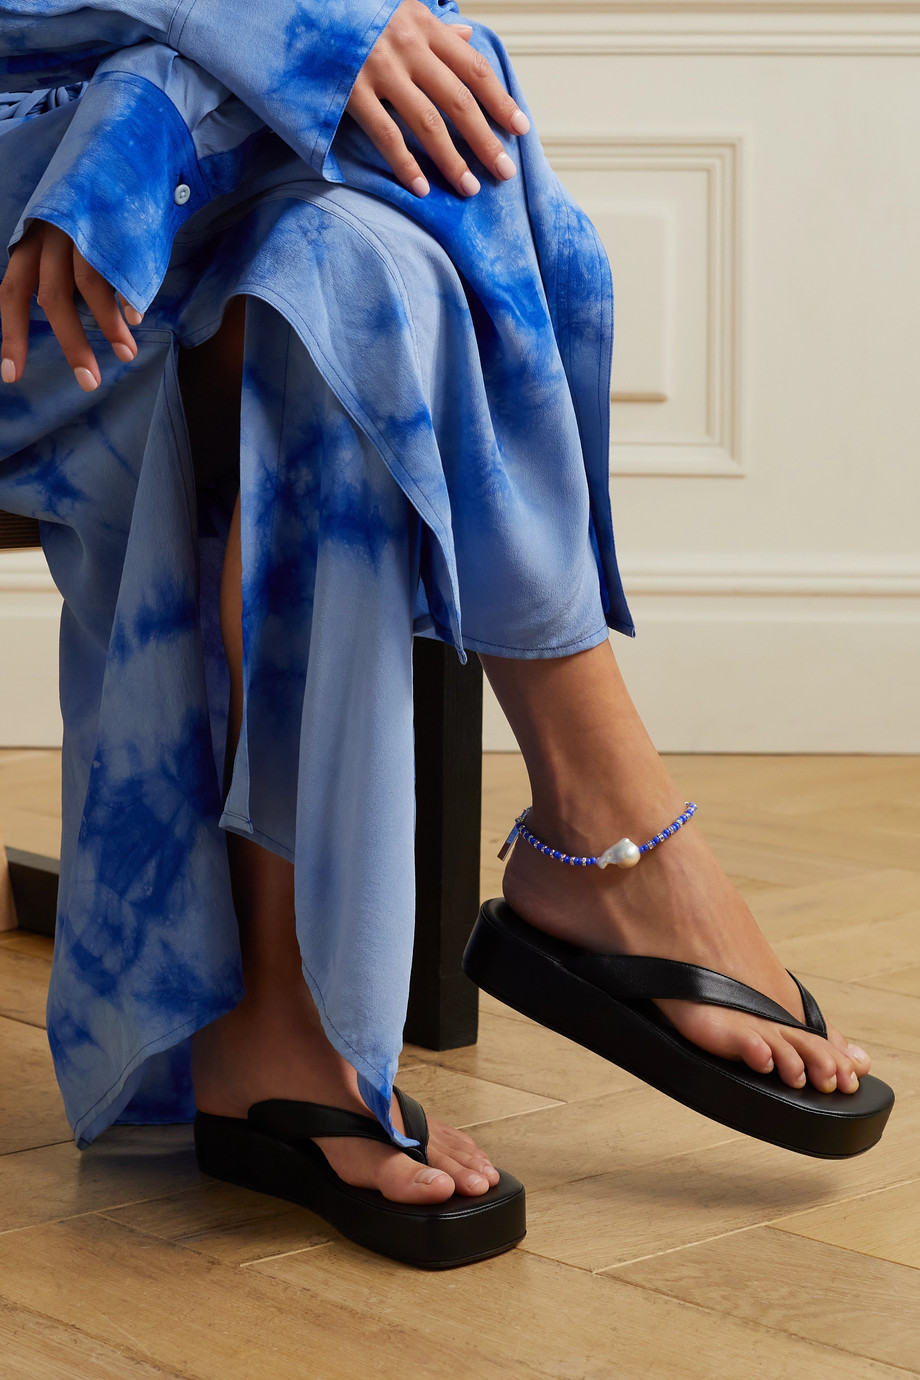 PEARL OCTOPUSS.Y Klein silver-plated multi-stone anklet